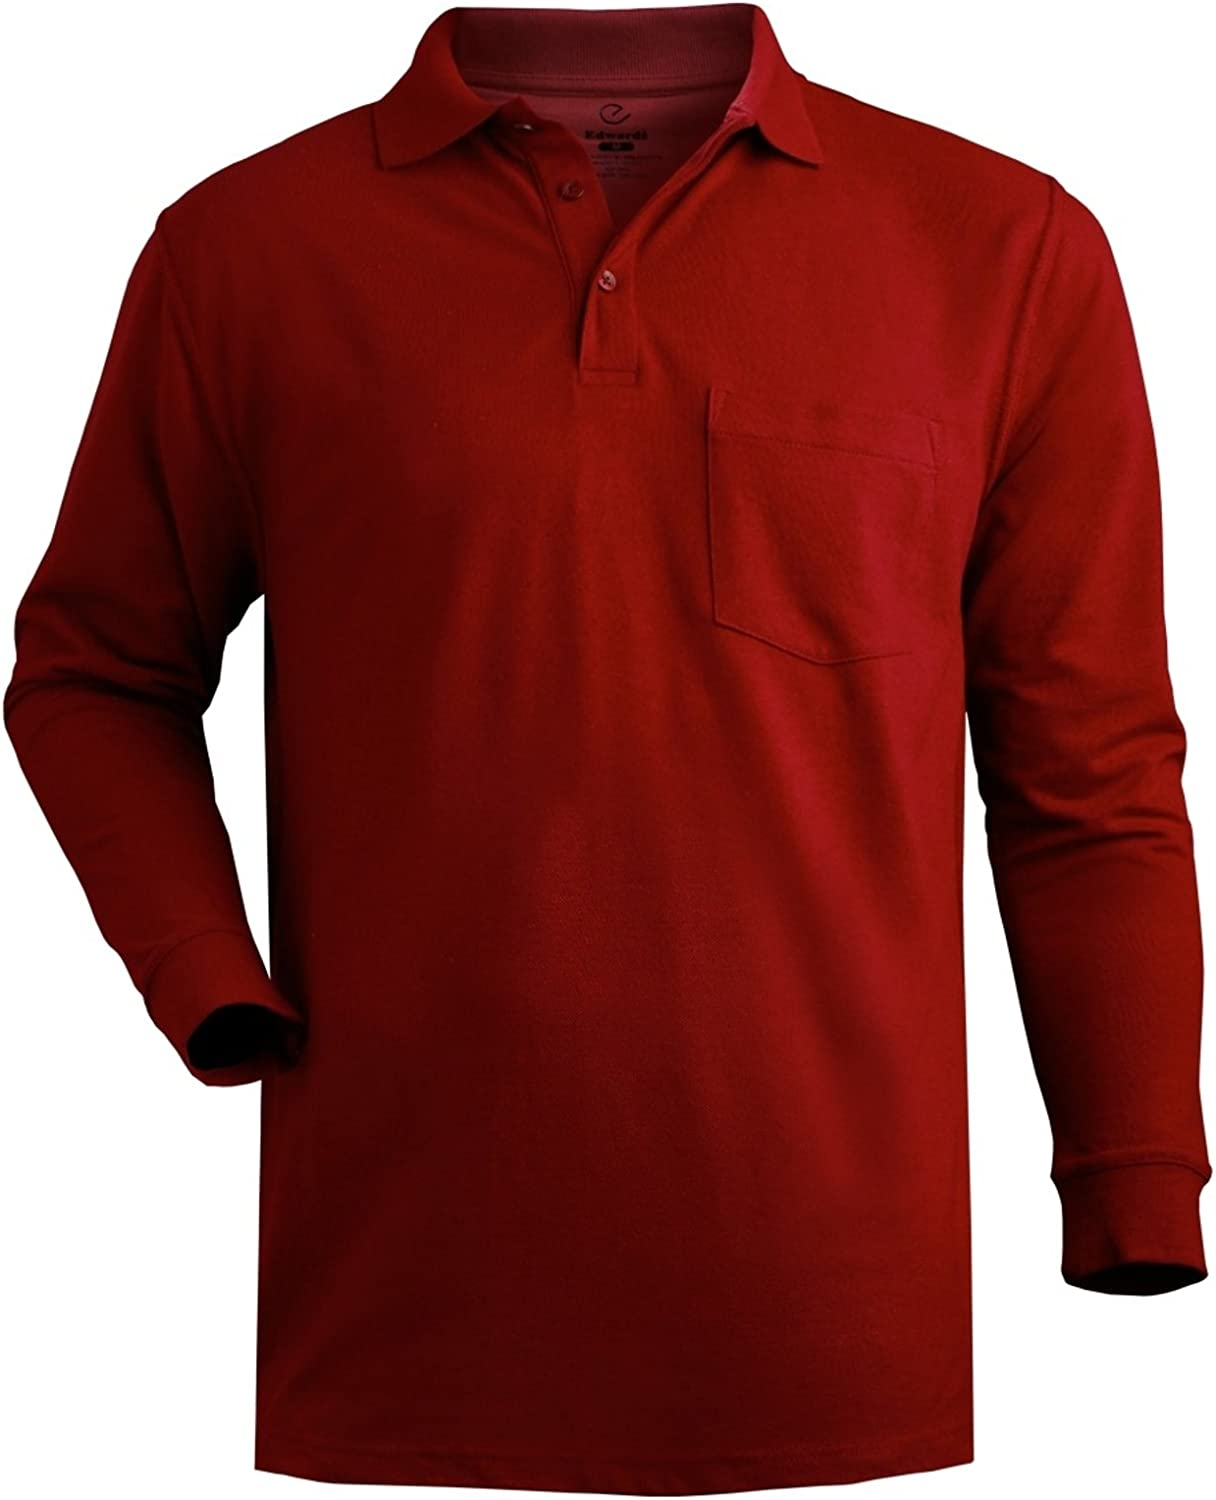 P & J Big and Tall Big and Tall Long Sleeved Polo Shirt With Pocket up To 6XT